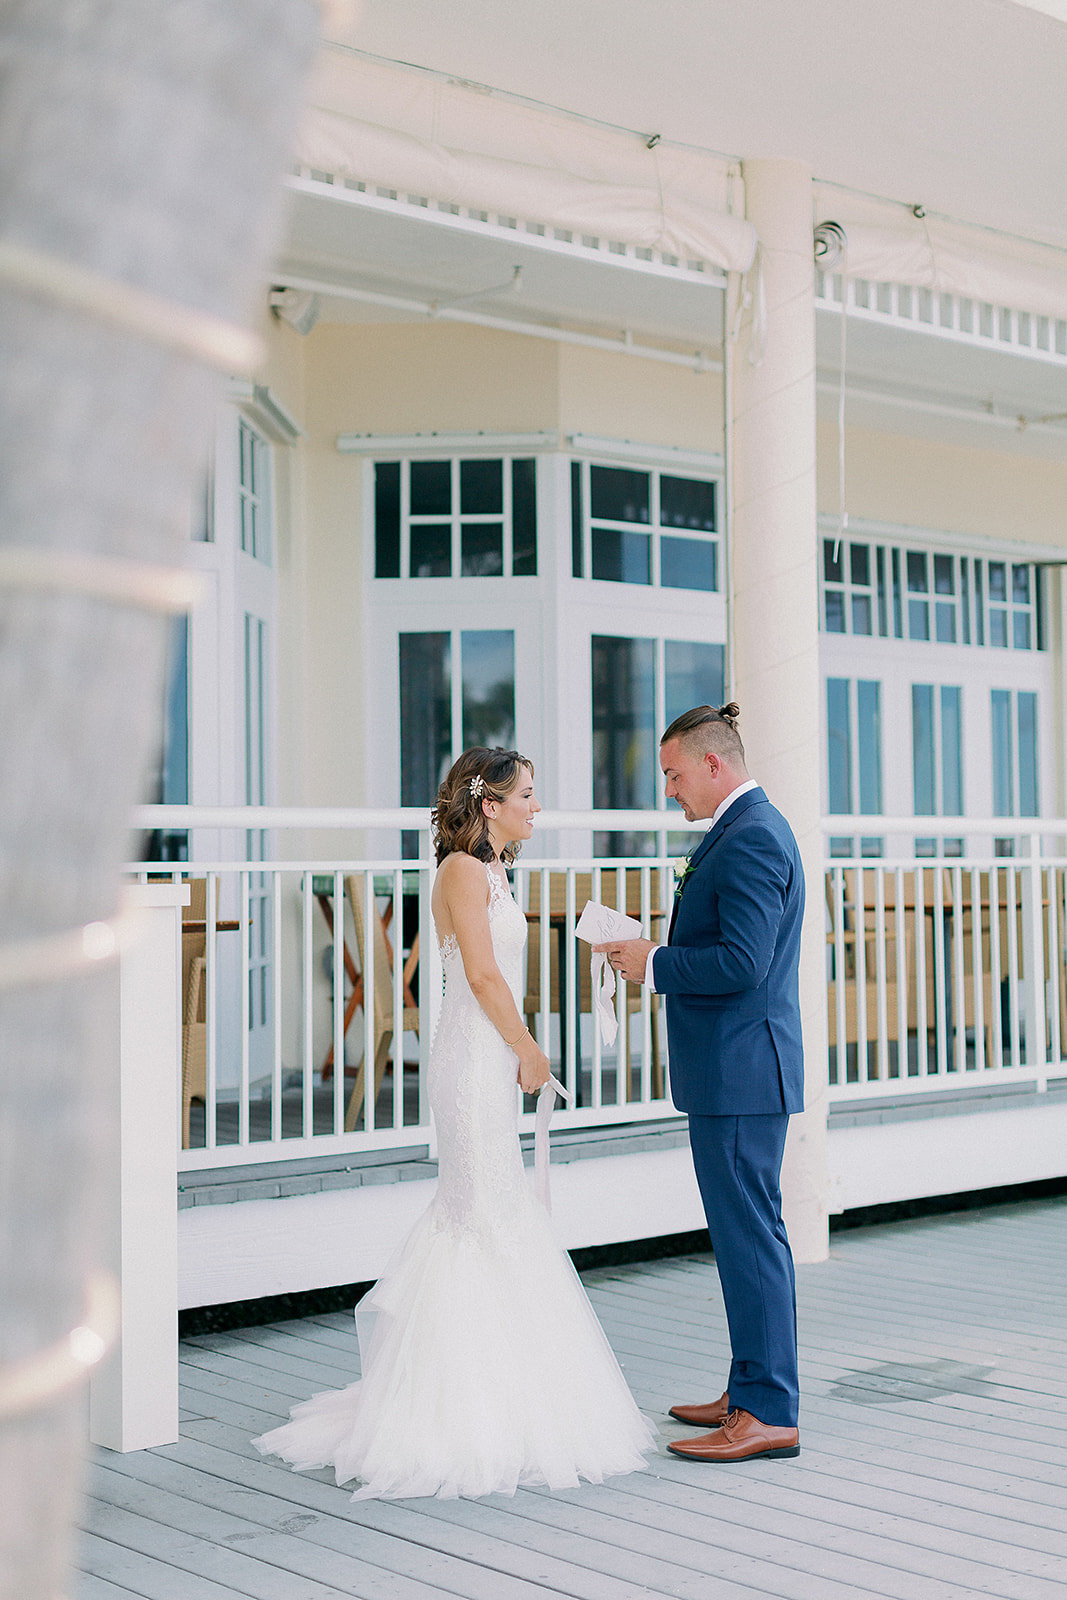 Aubry___Bill_Forsyth_Hyatt_Centric_Key_West_Wedding_Photographer_Casie_Marie_Photography-247